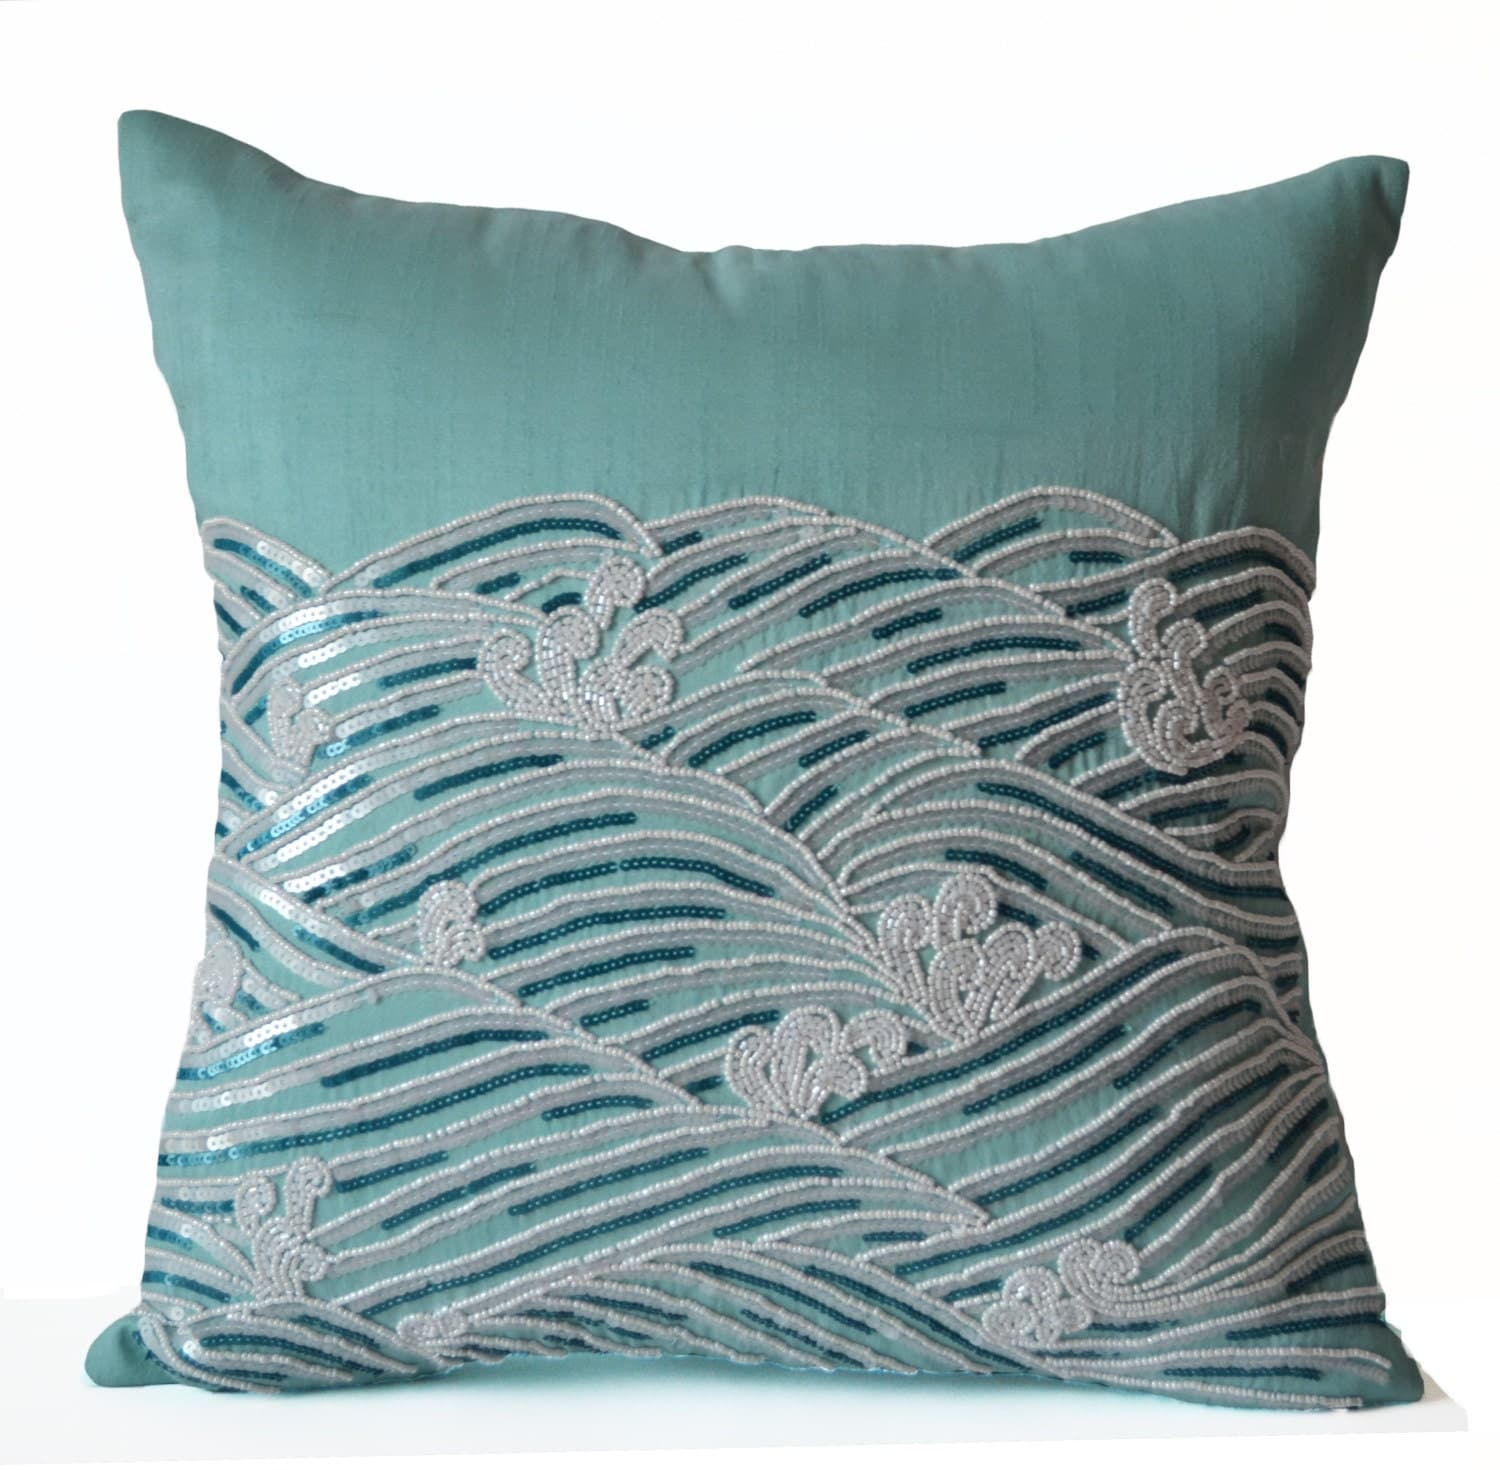 Decorative pillow cover teal throw pillows sequin accent for Decor pillows